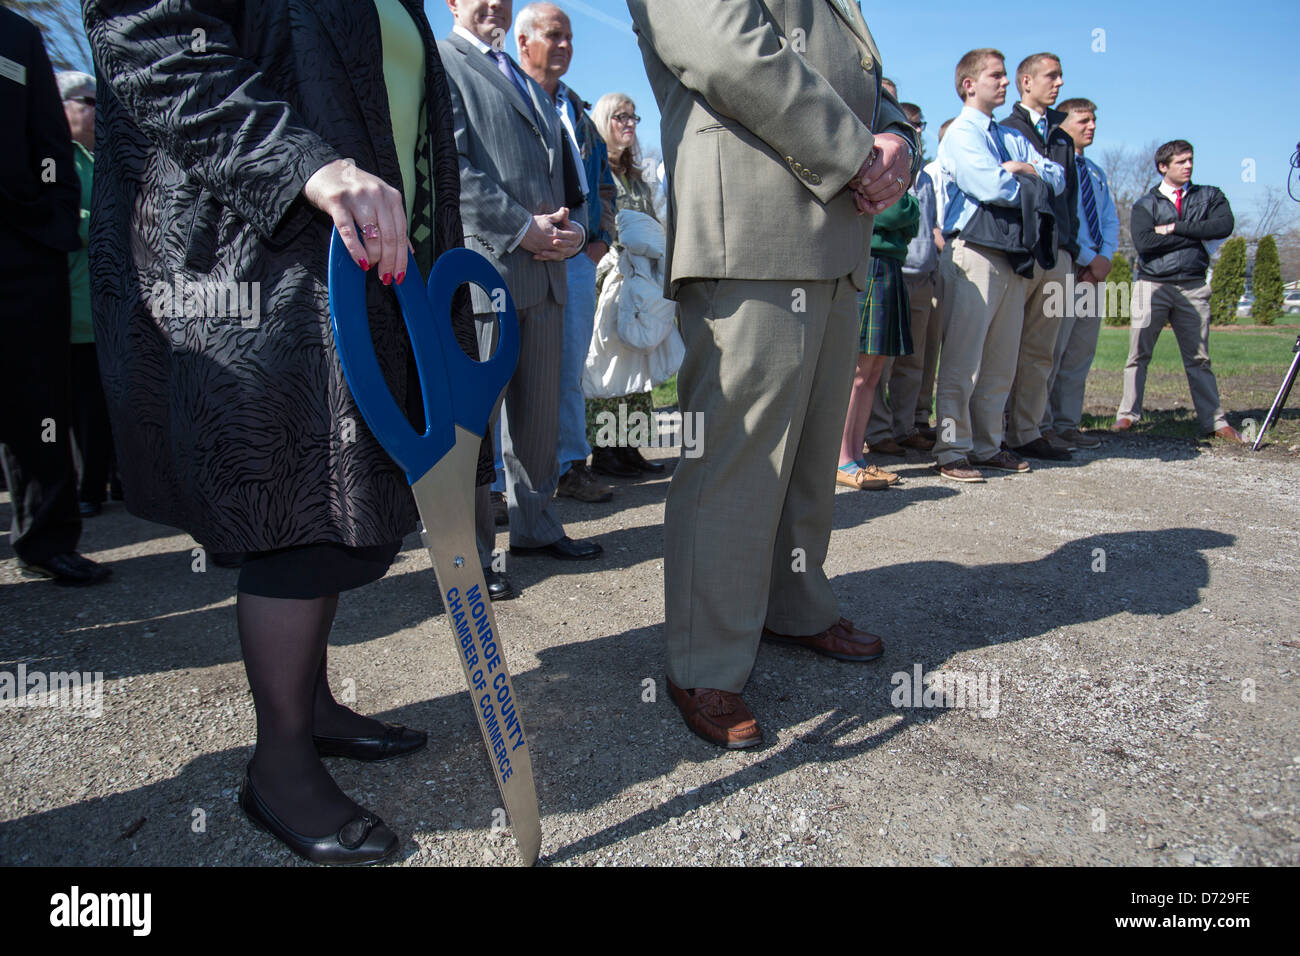 A representative of the Chamber of Commerce holds oversized scissors for a ribbon-cutting ceremony at a solar power - Stock Image